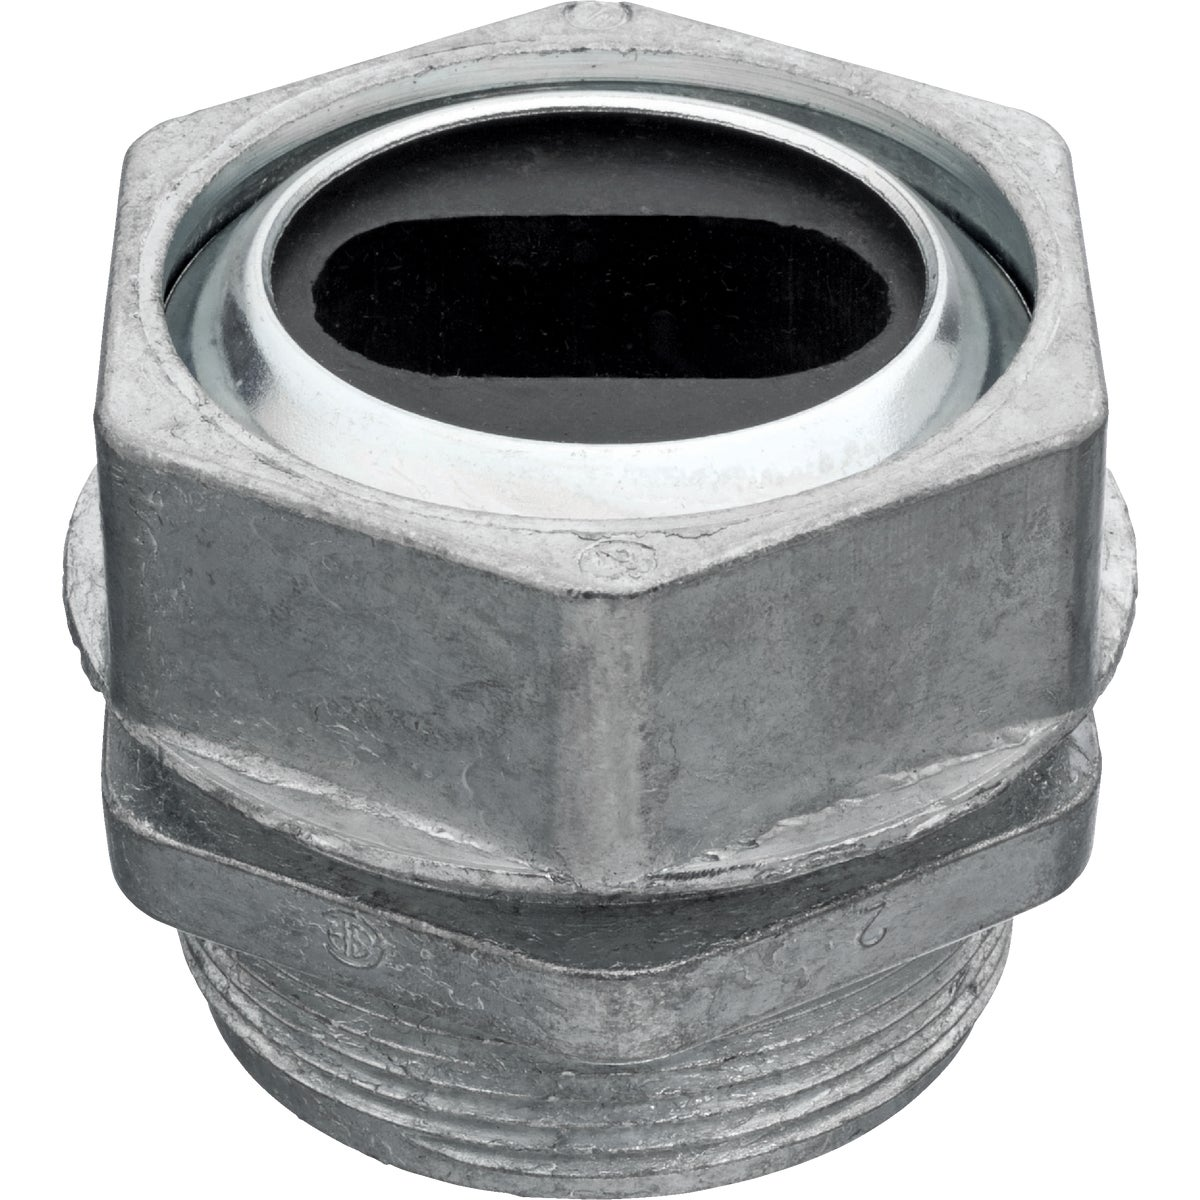 Steel City Watertight Service Entrance Cable Connector